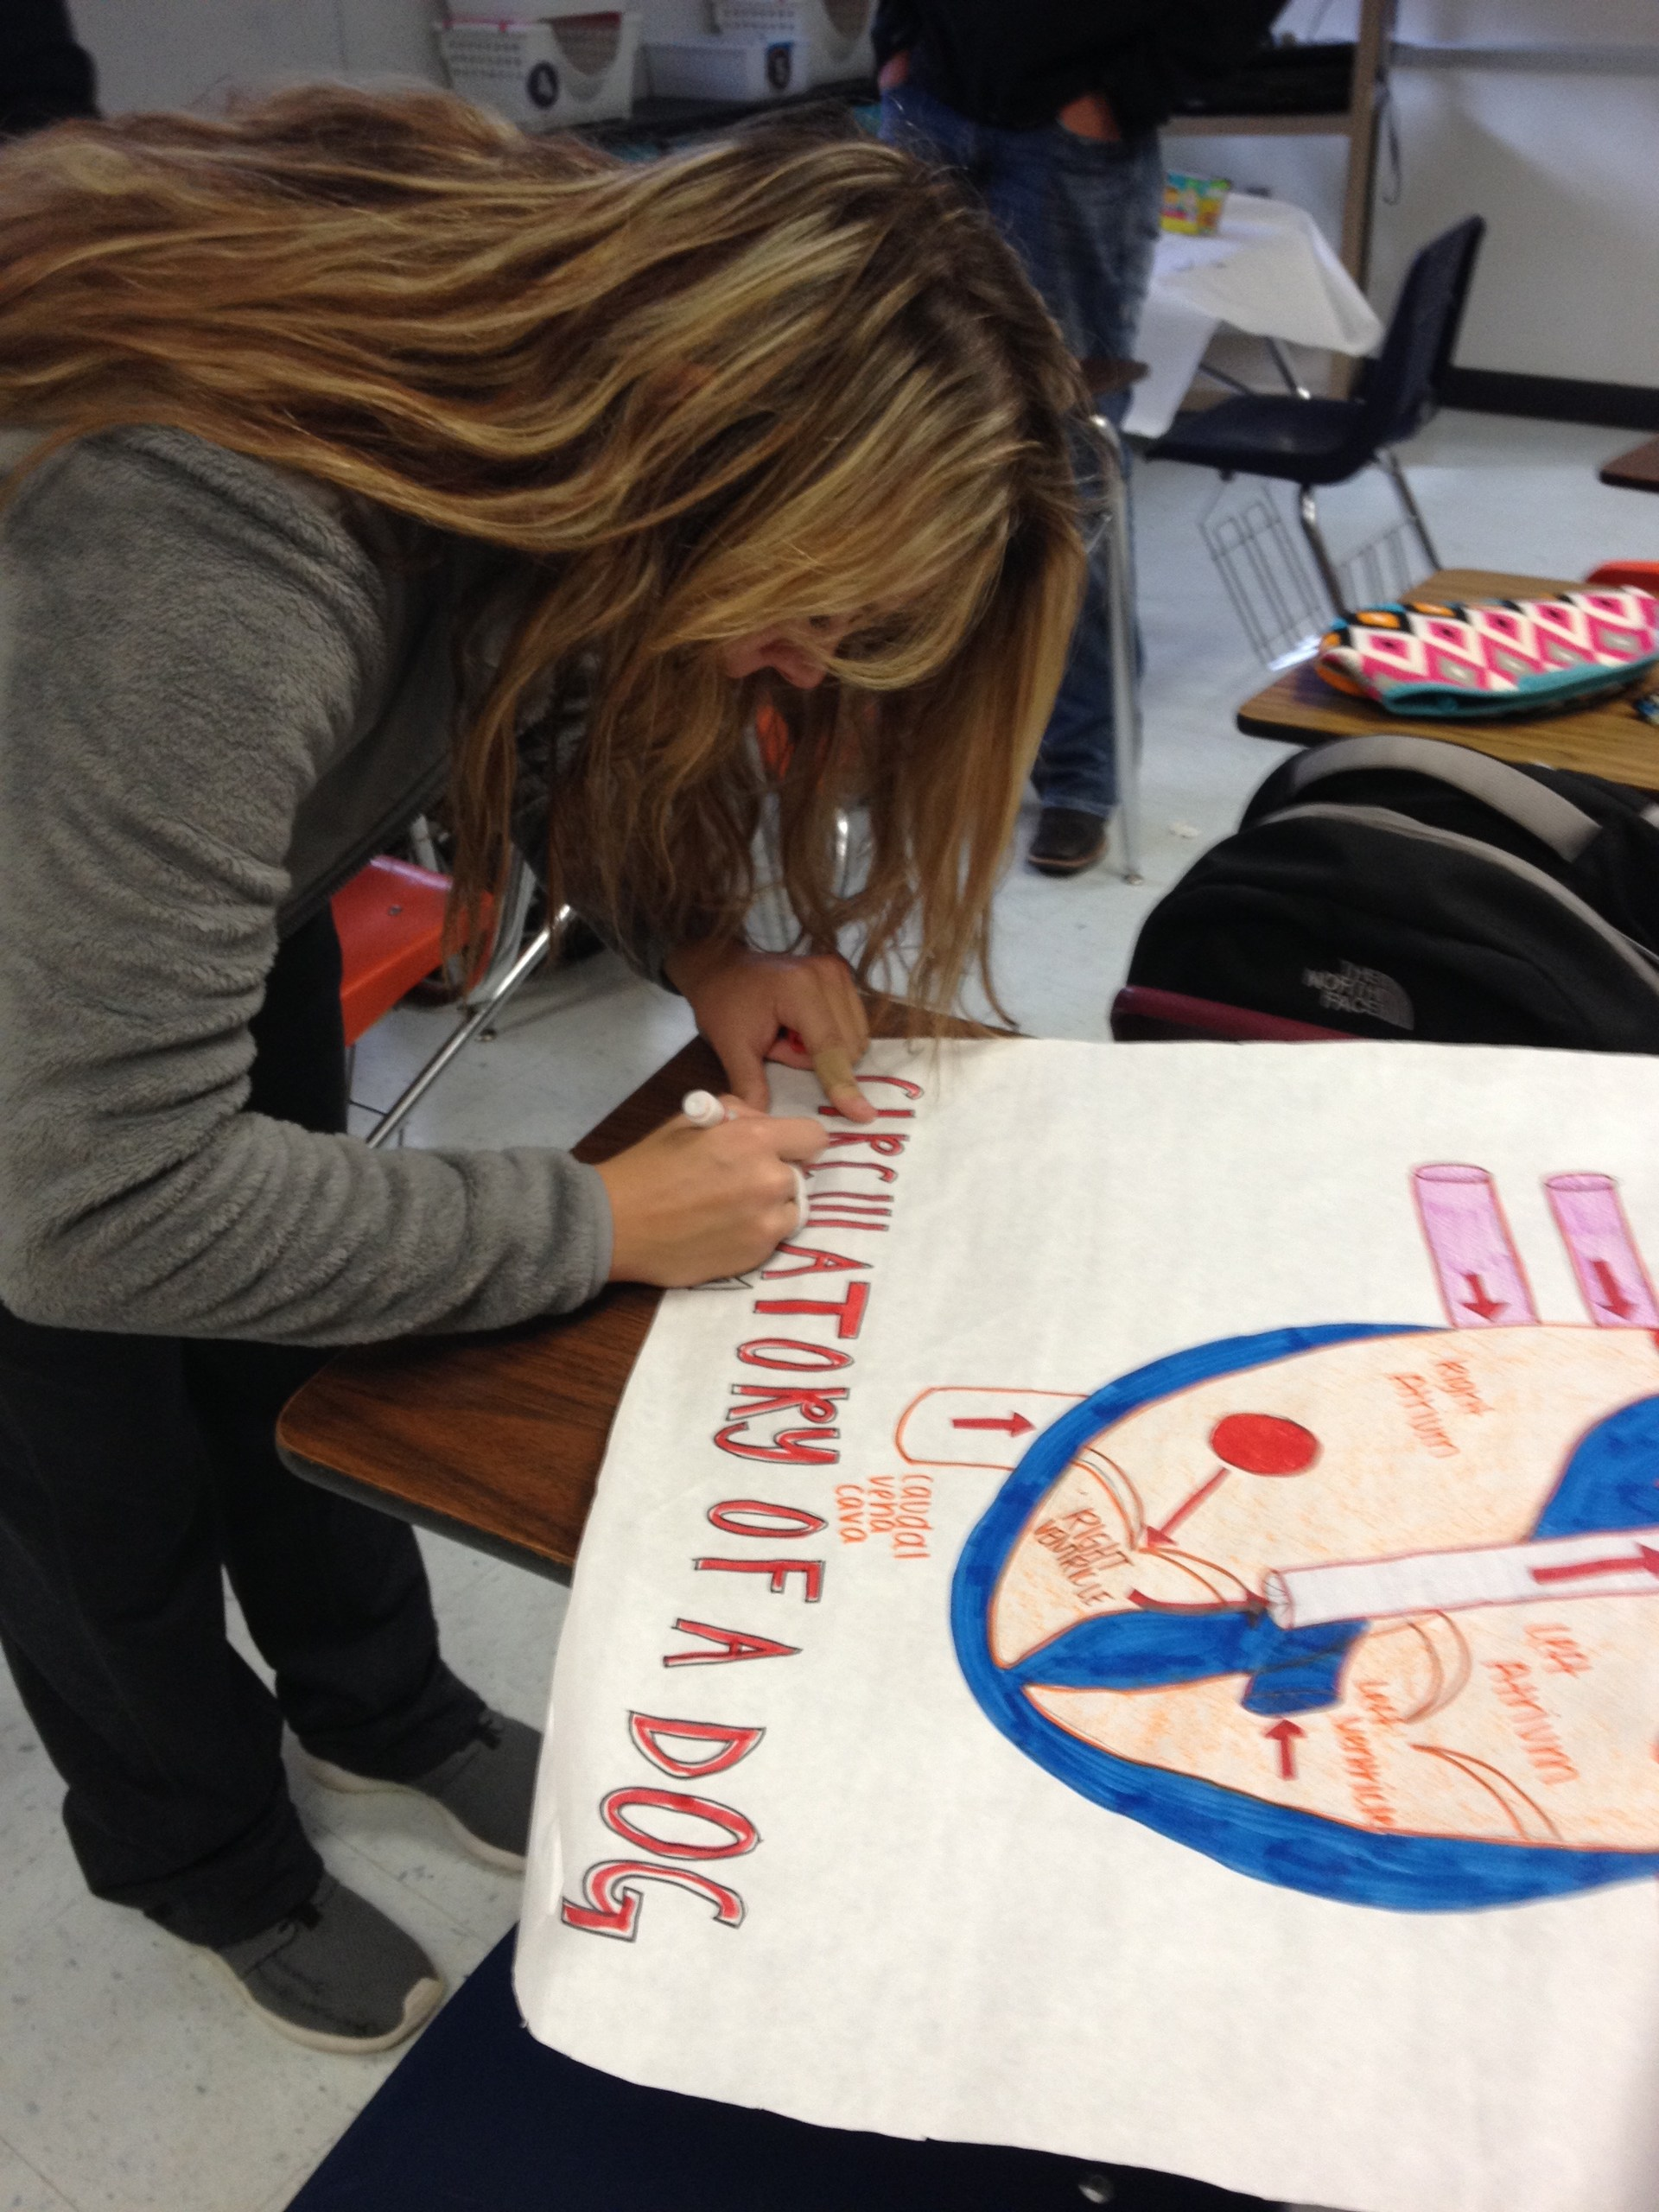 Students creating the circulatory system of a dog in class.